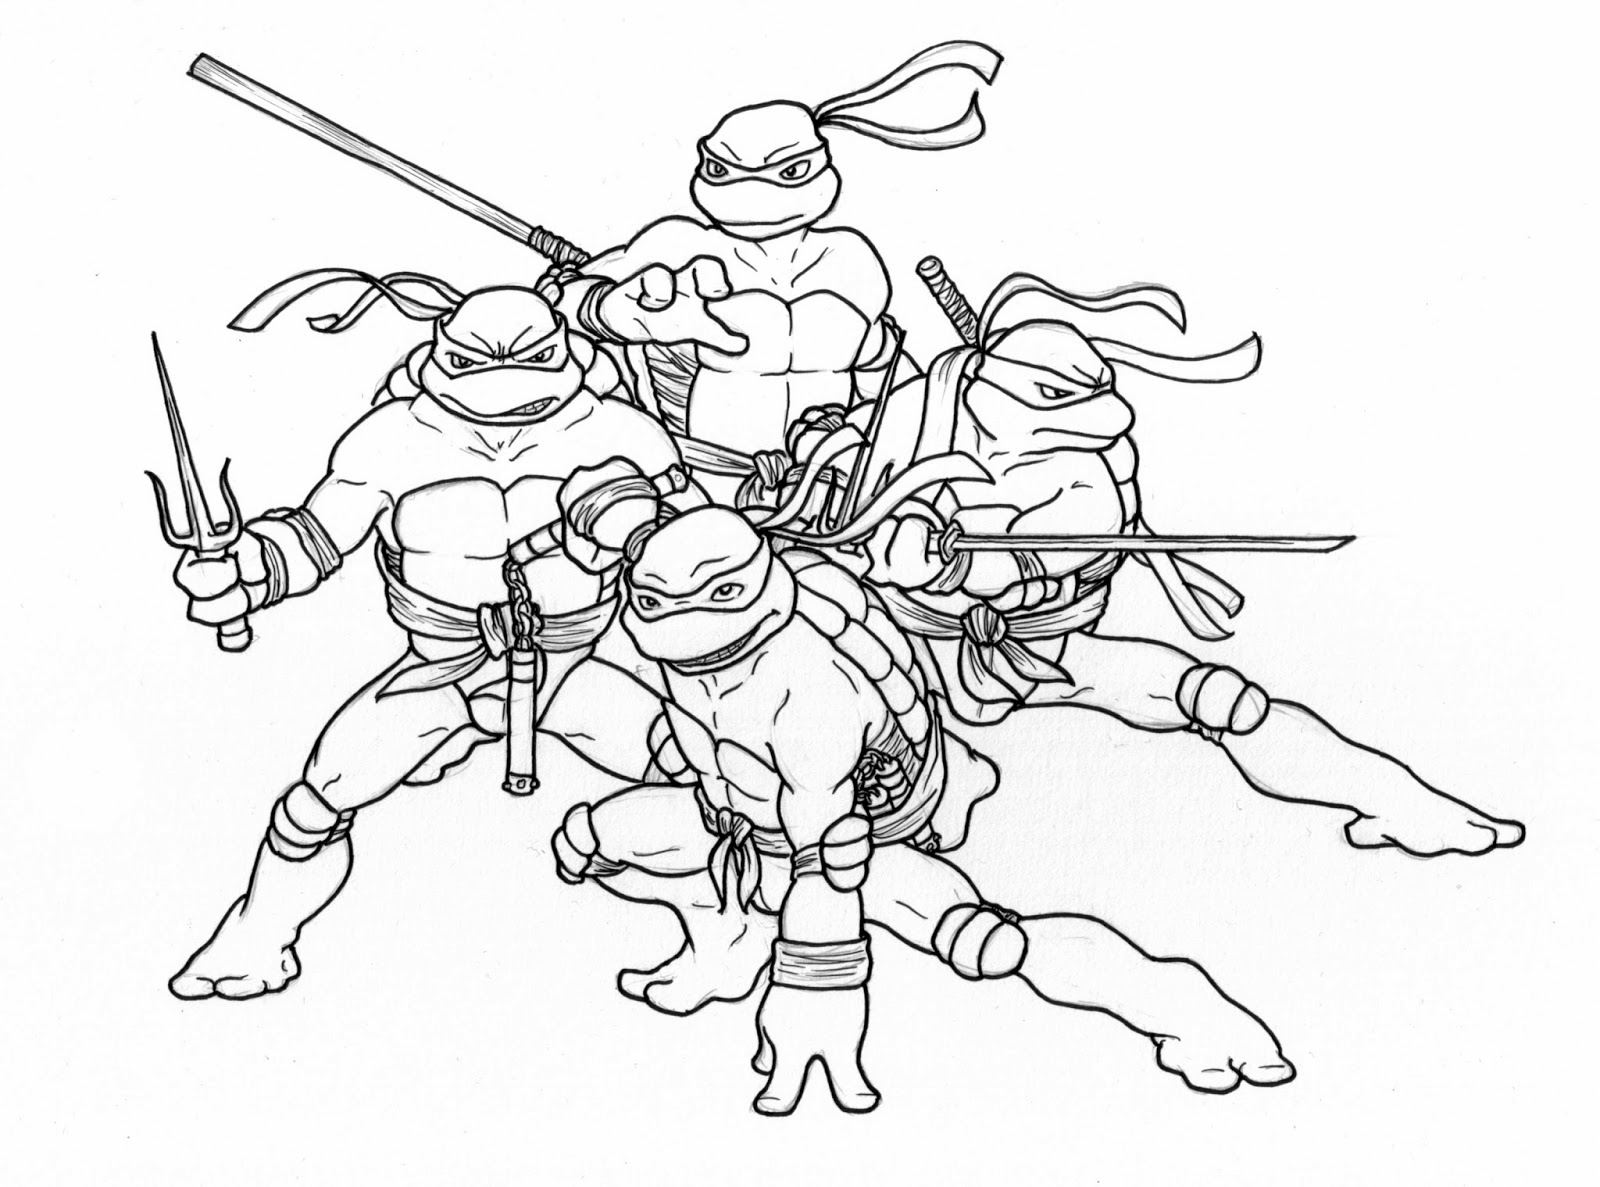 ninja turtle coloring pages for kids easy teenage mutant ninja turtle coloring pages coloring coloring ninja turtle kids for pages